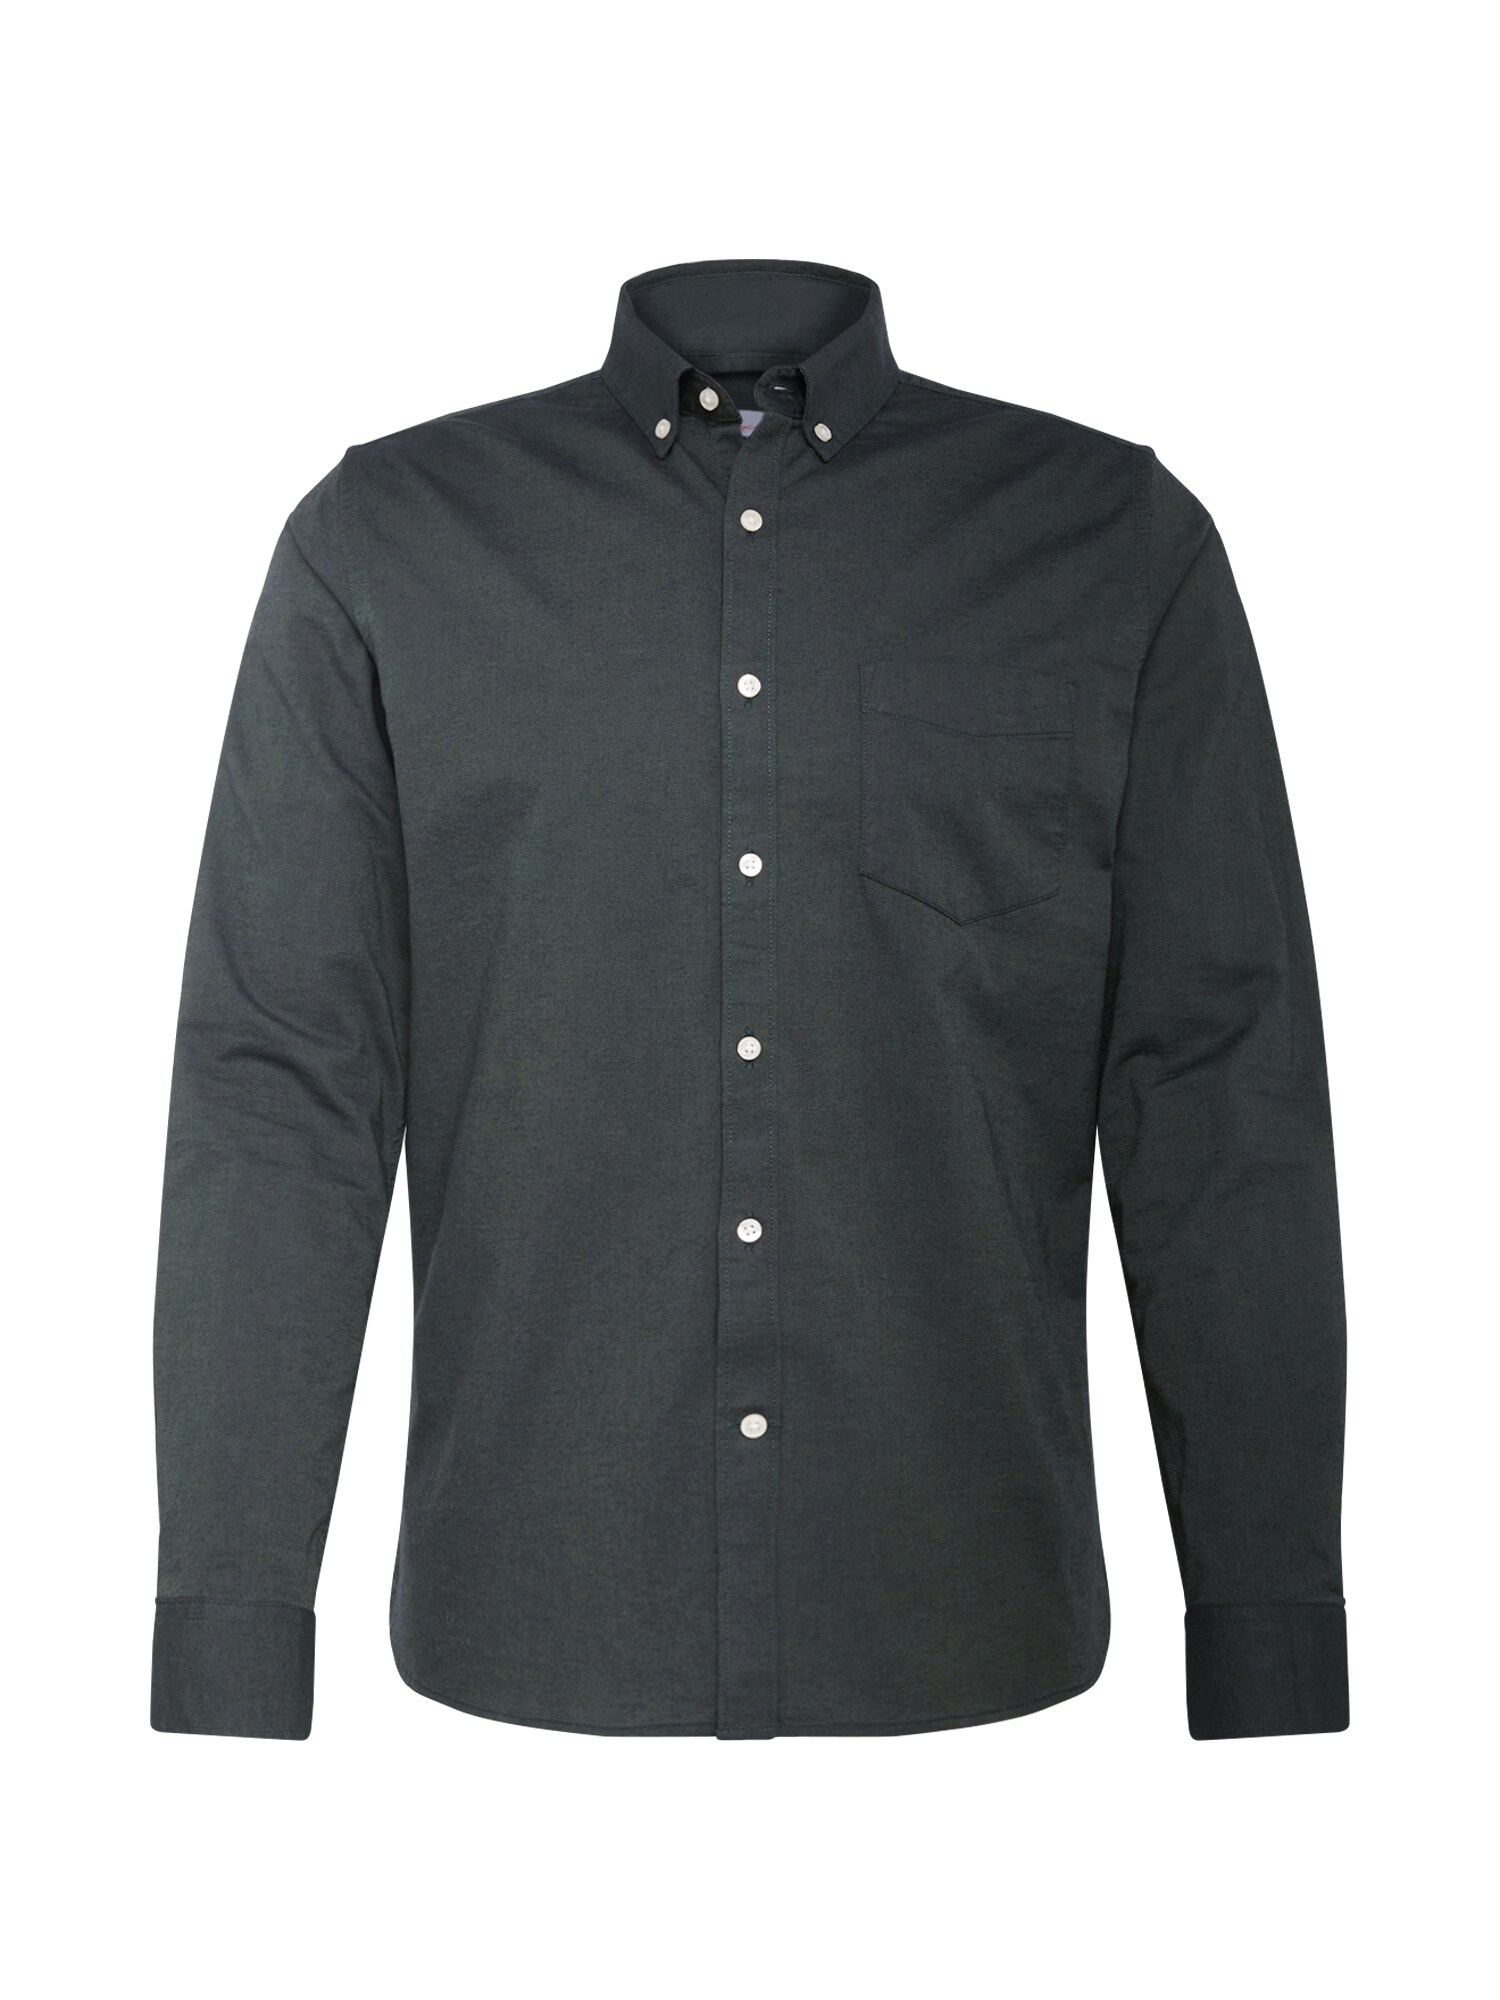 Košile Strethced oxford shirt jedle KnowledgeCotton Apparel